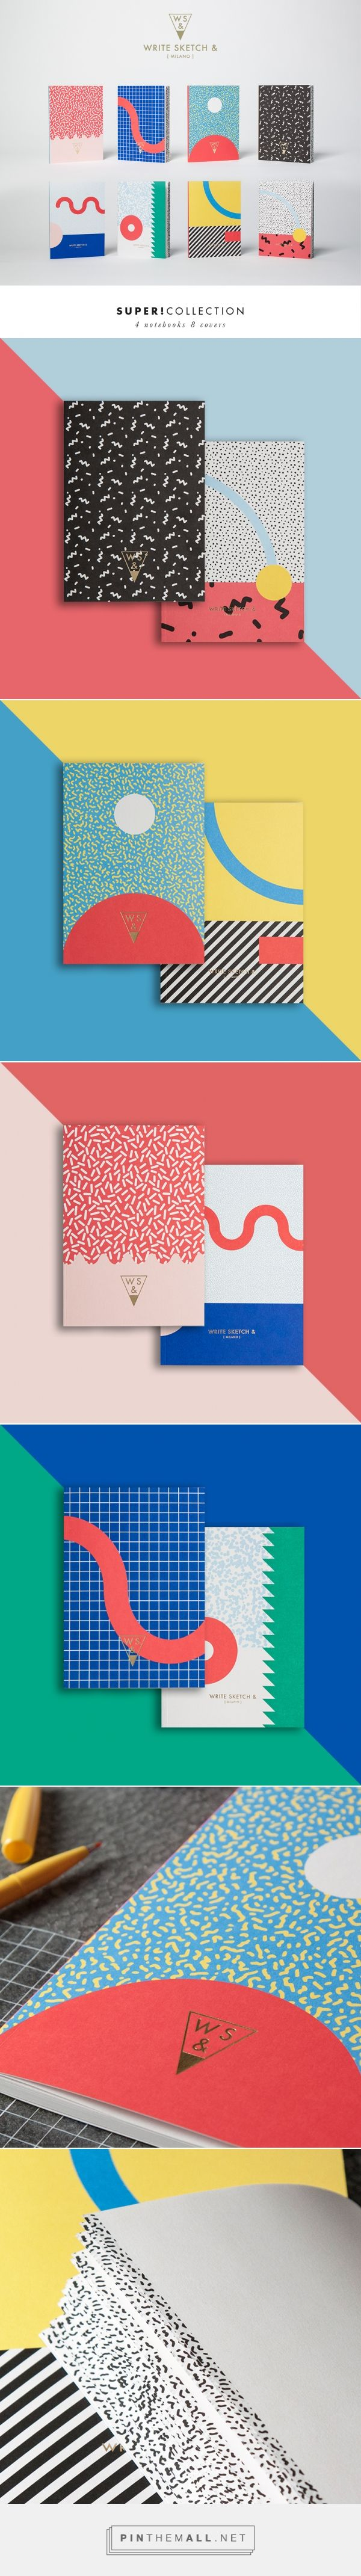 Write Sketch & | Super Collection | Notebooks on Behance - created via http://pinthemall.net